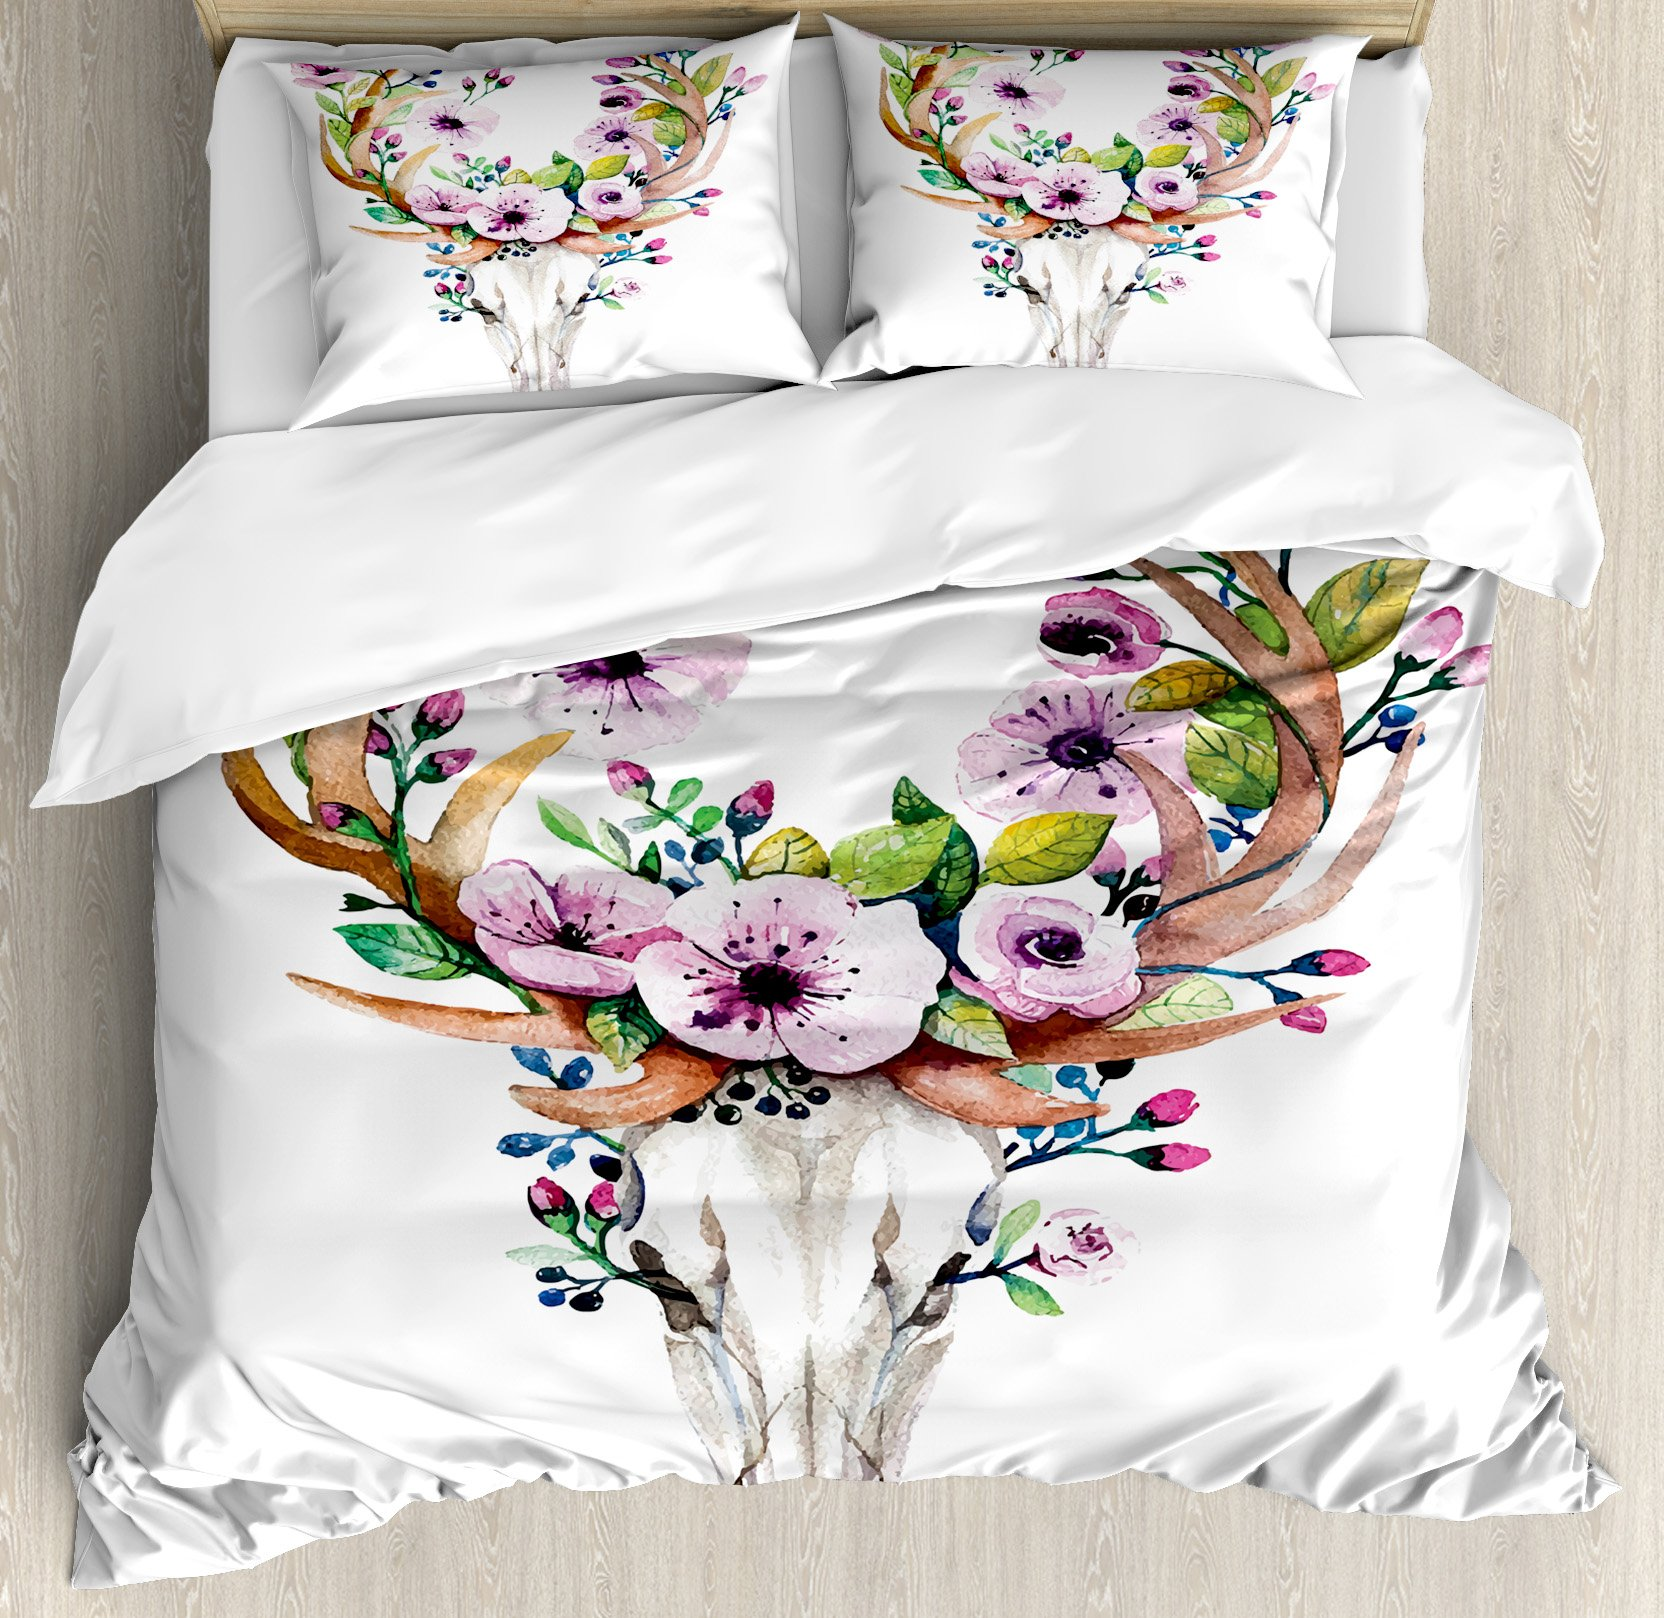 Ambesonne Skull Duvet Cover Set Queen Size, Deer Animal Skull with Floral Horns Nature Inspired Dead and Living Art Print, Decorative 3 Piece Bedding Set with 2 Pillow Shams, Cream Pink Brown